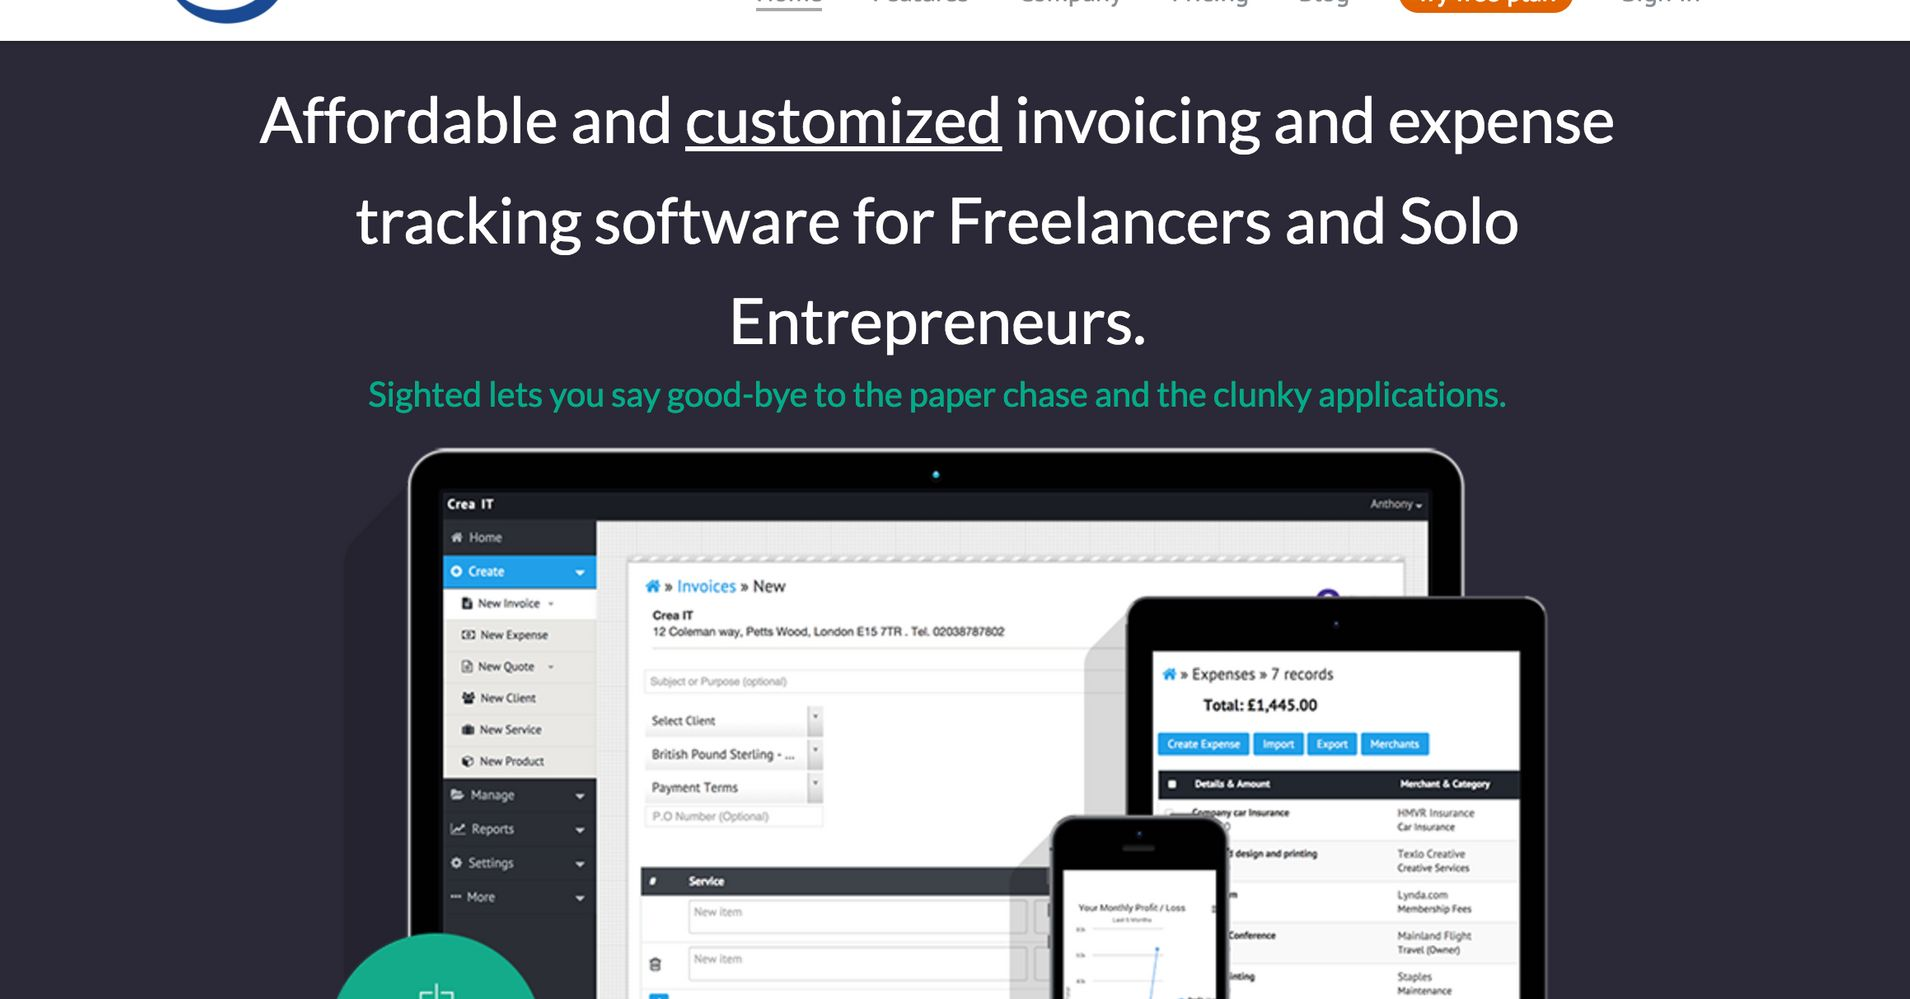 Top Best Free Invoicing Software Tools For Small Businesses - Best free invoicing software for small business for service business